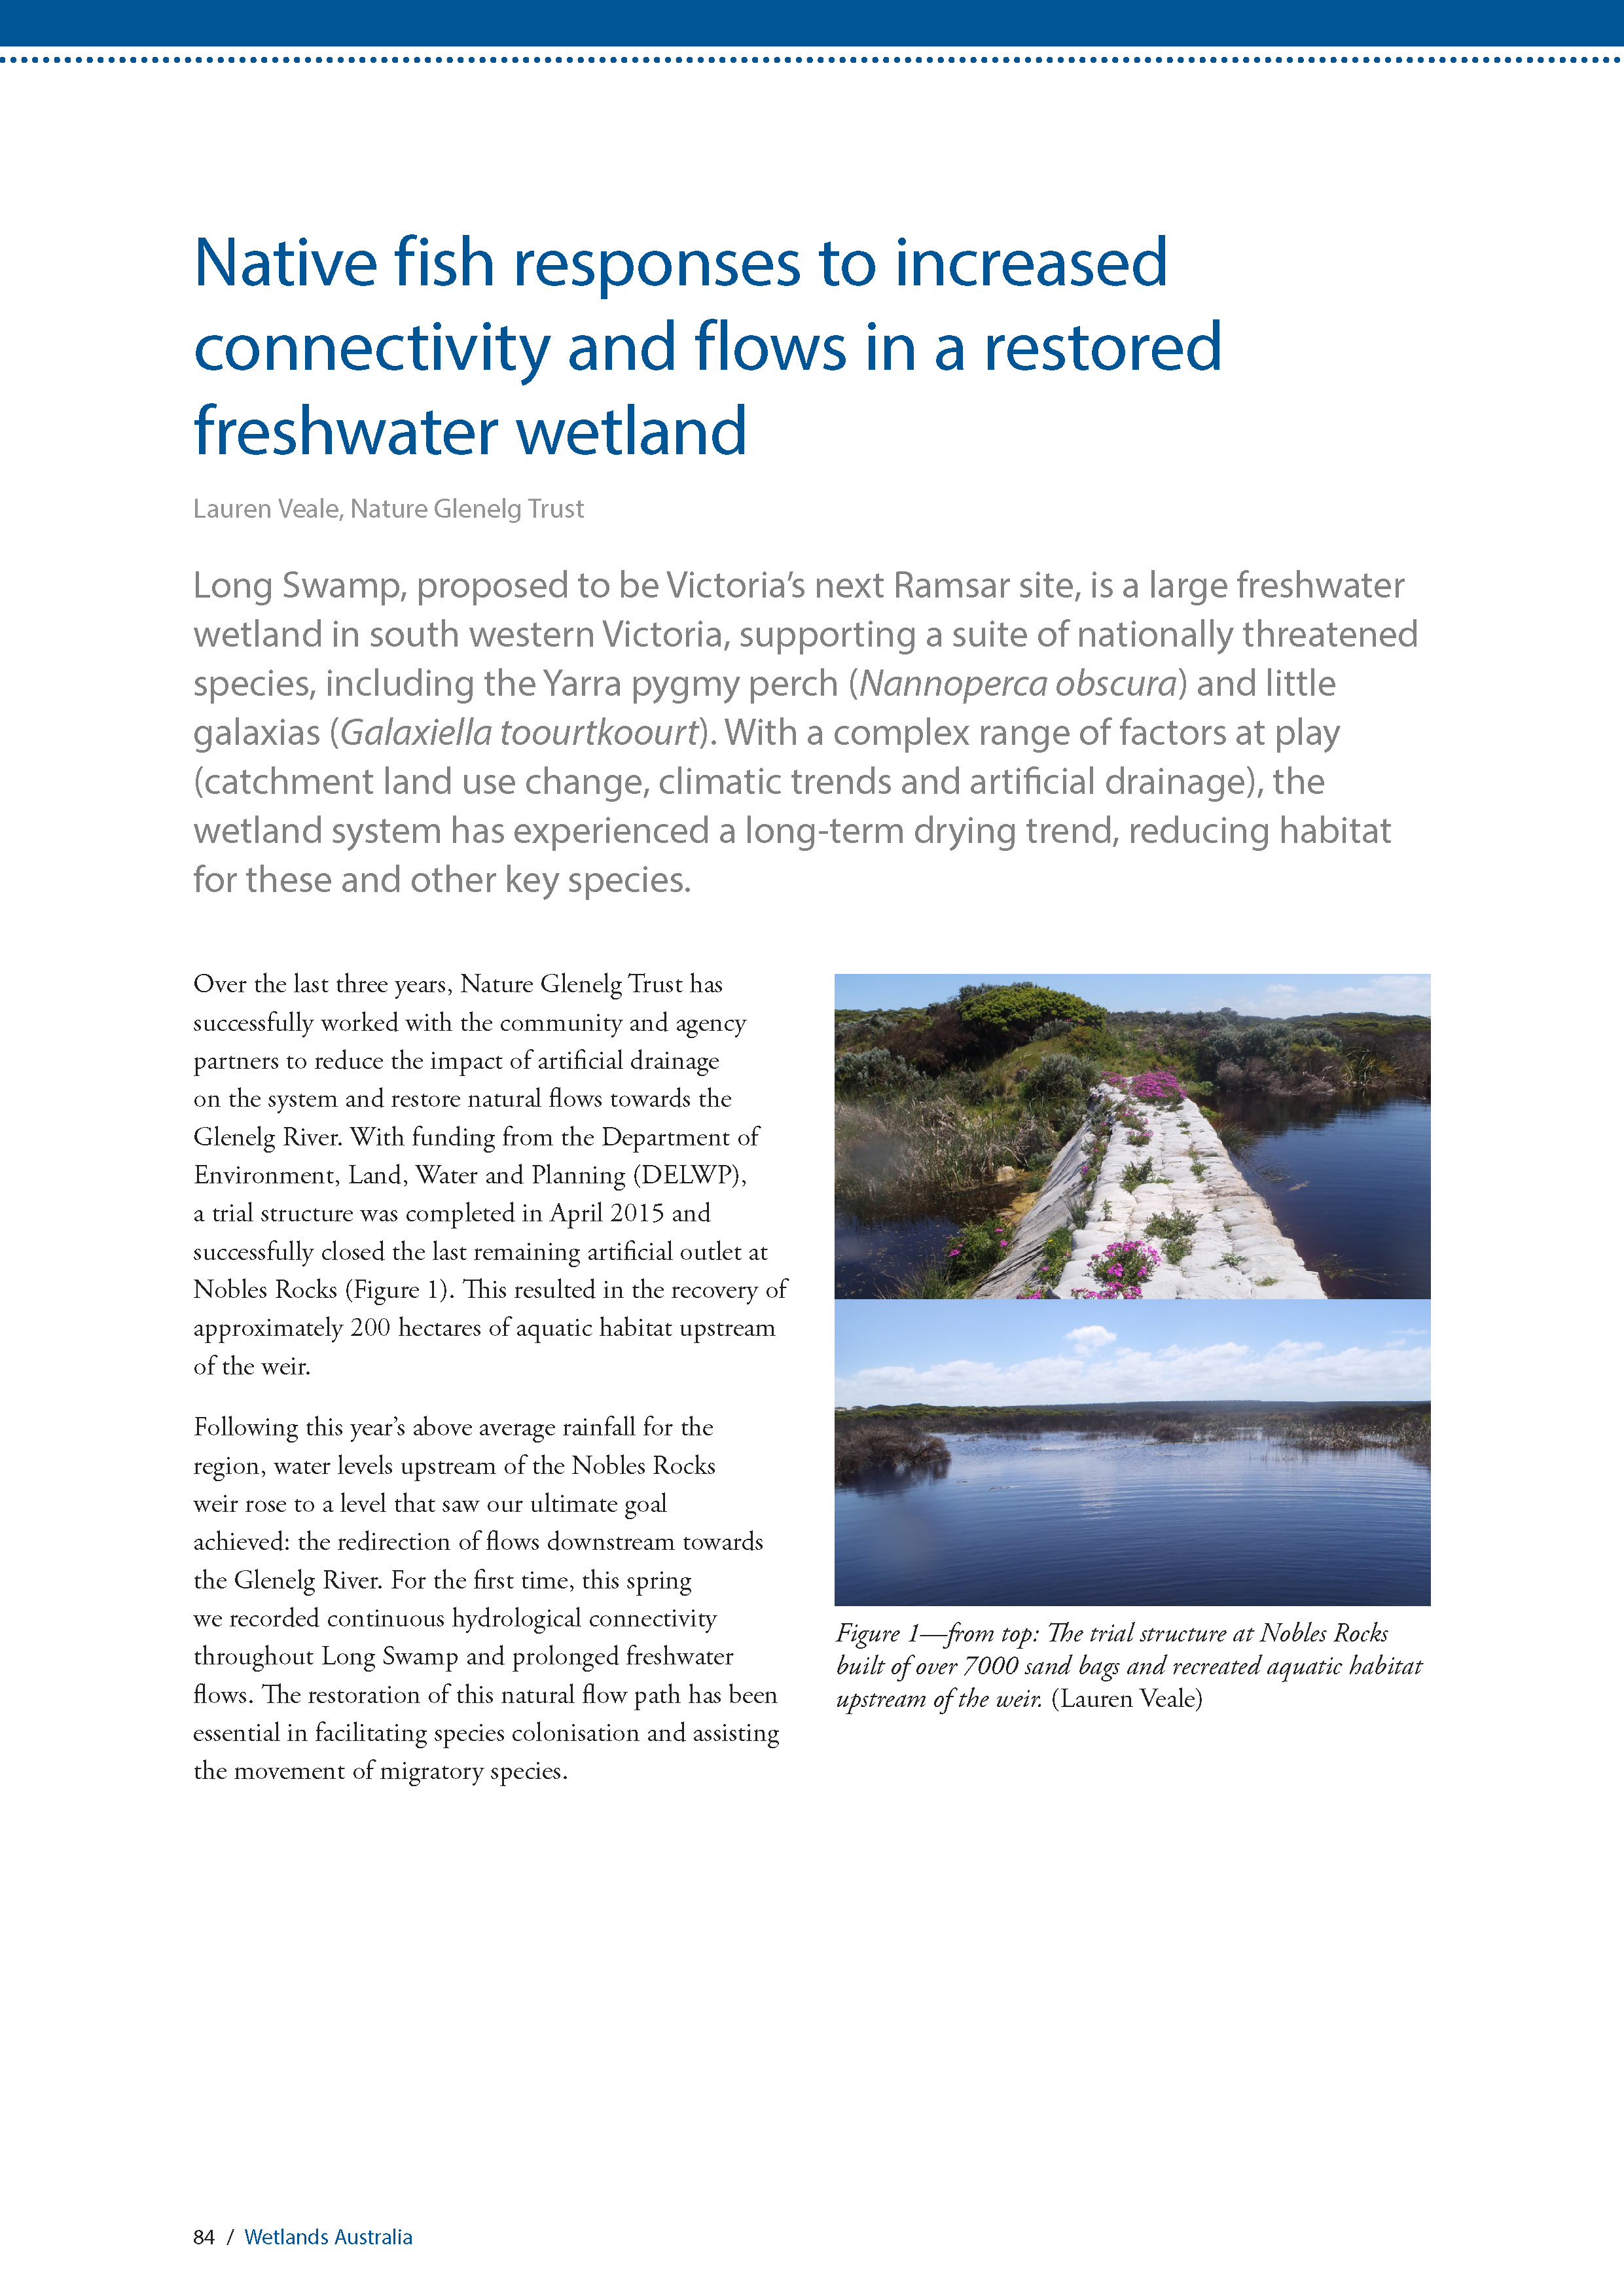 Long Swamp fish article - Wetlands Australia Vol 29